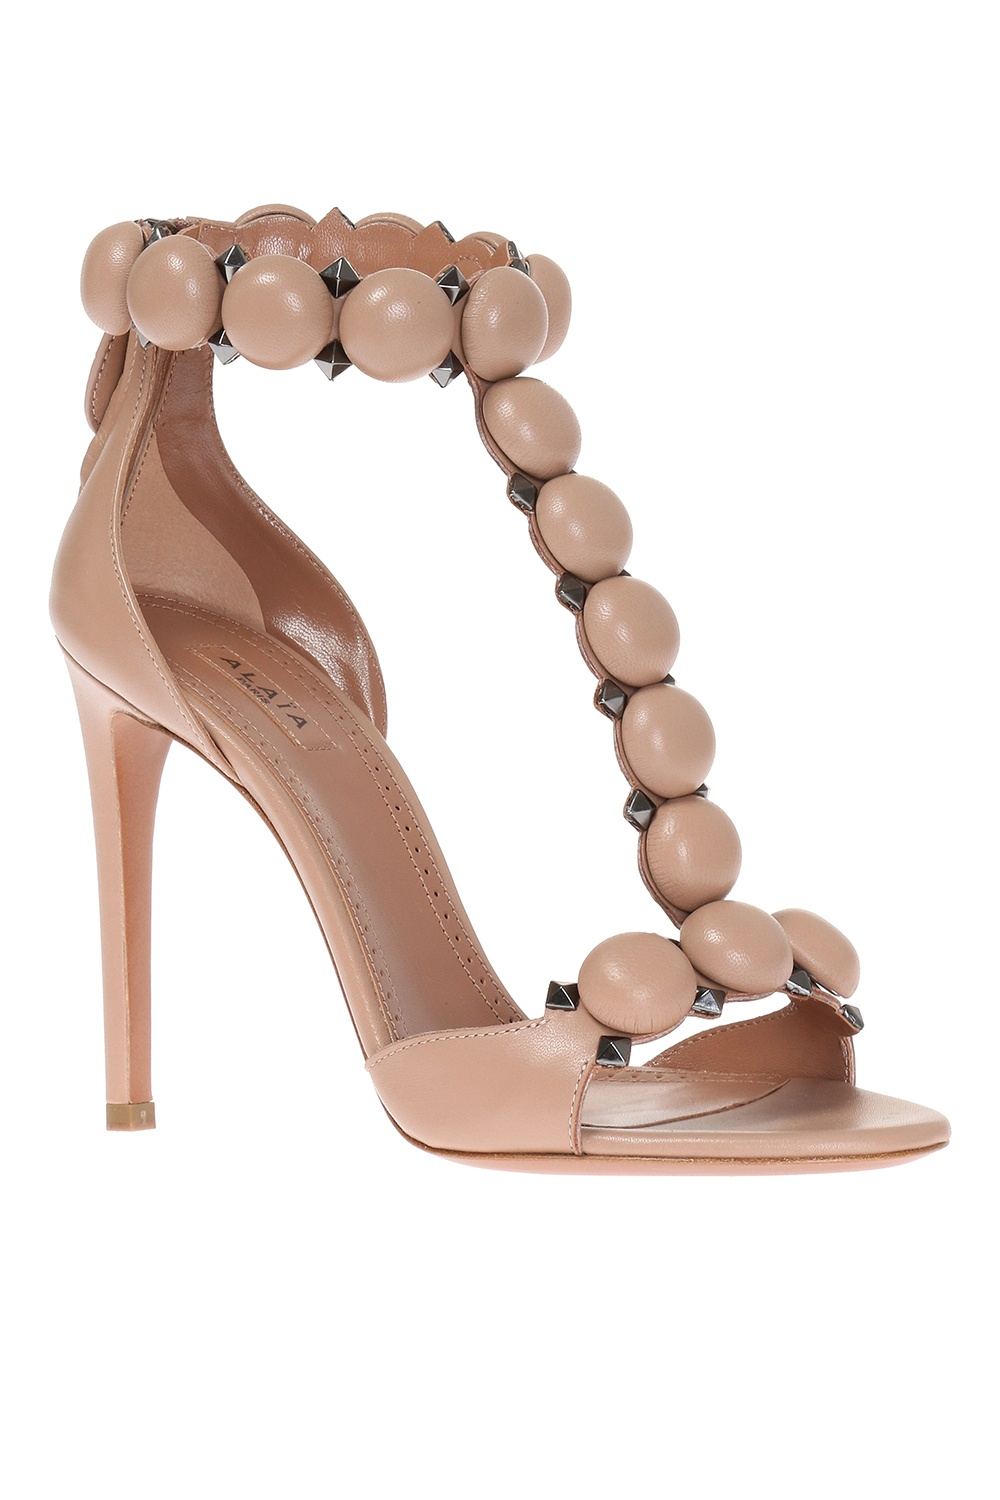 Alaia Leather high heel sandals